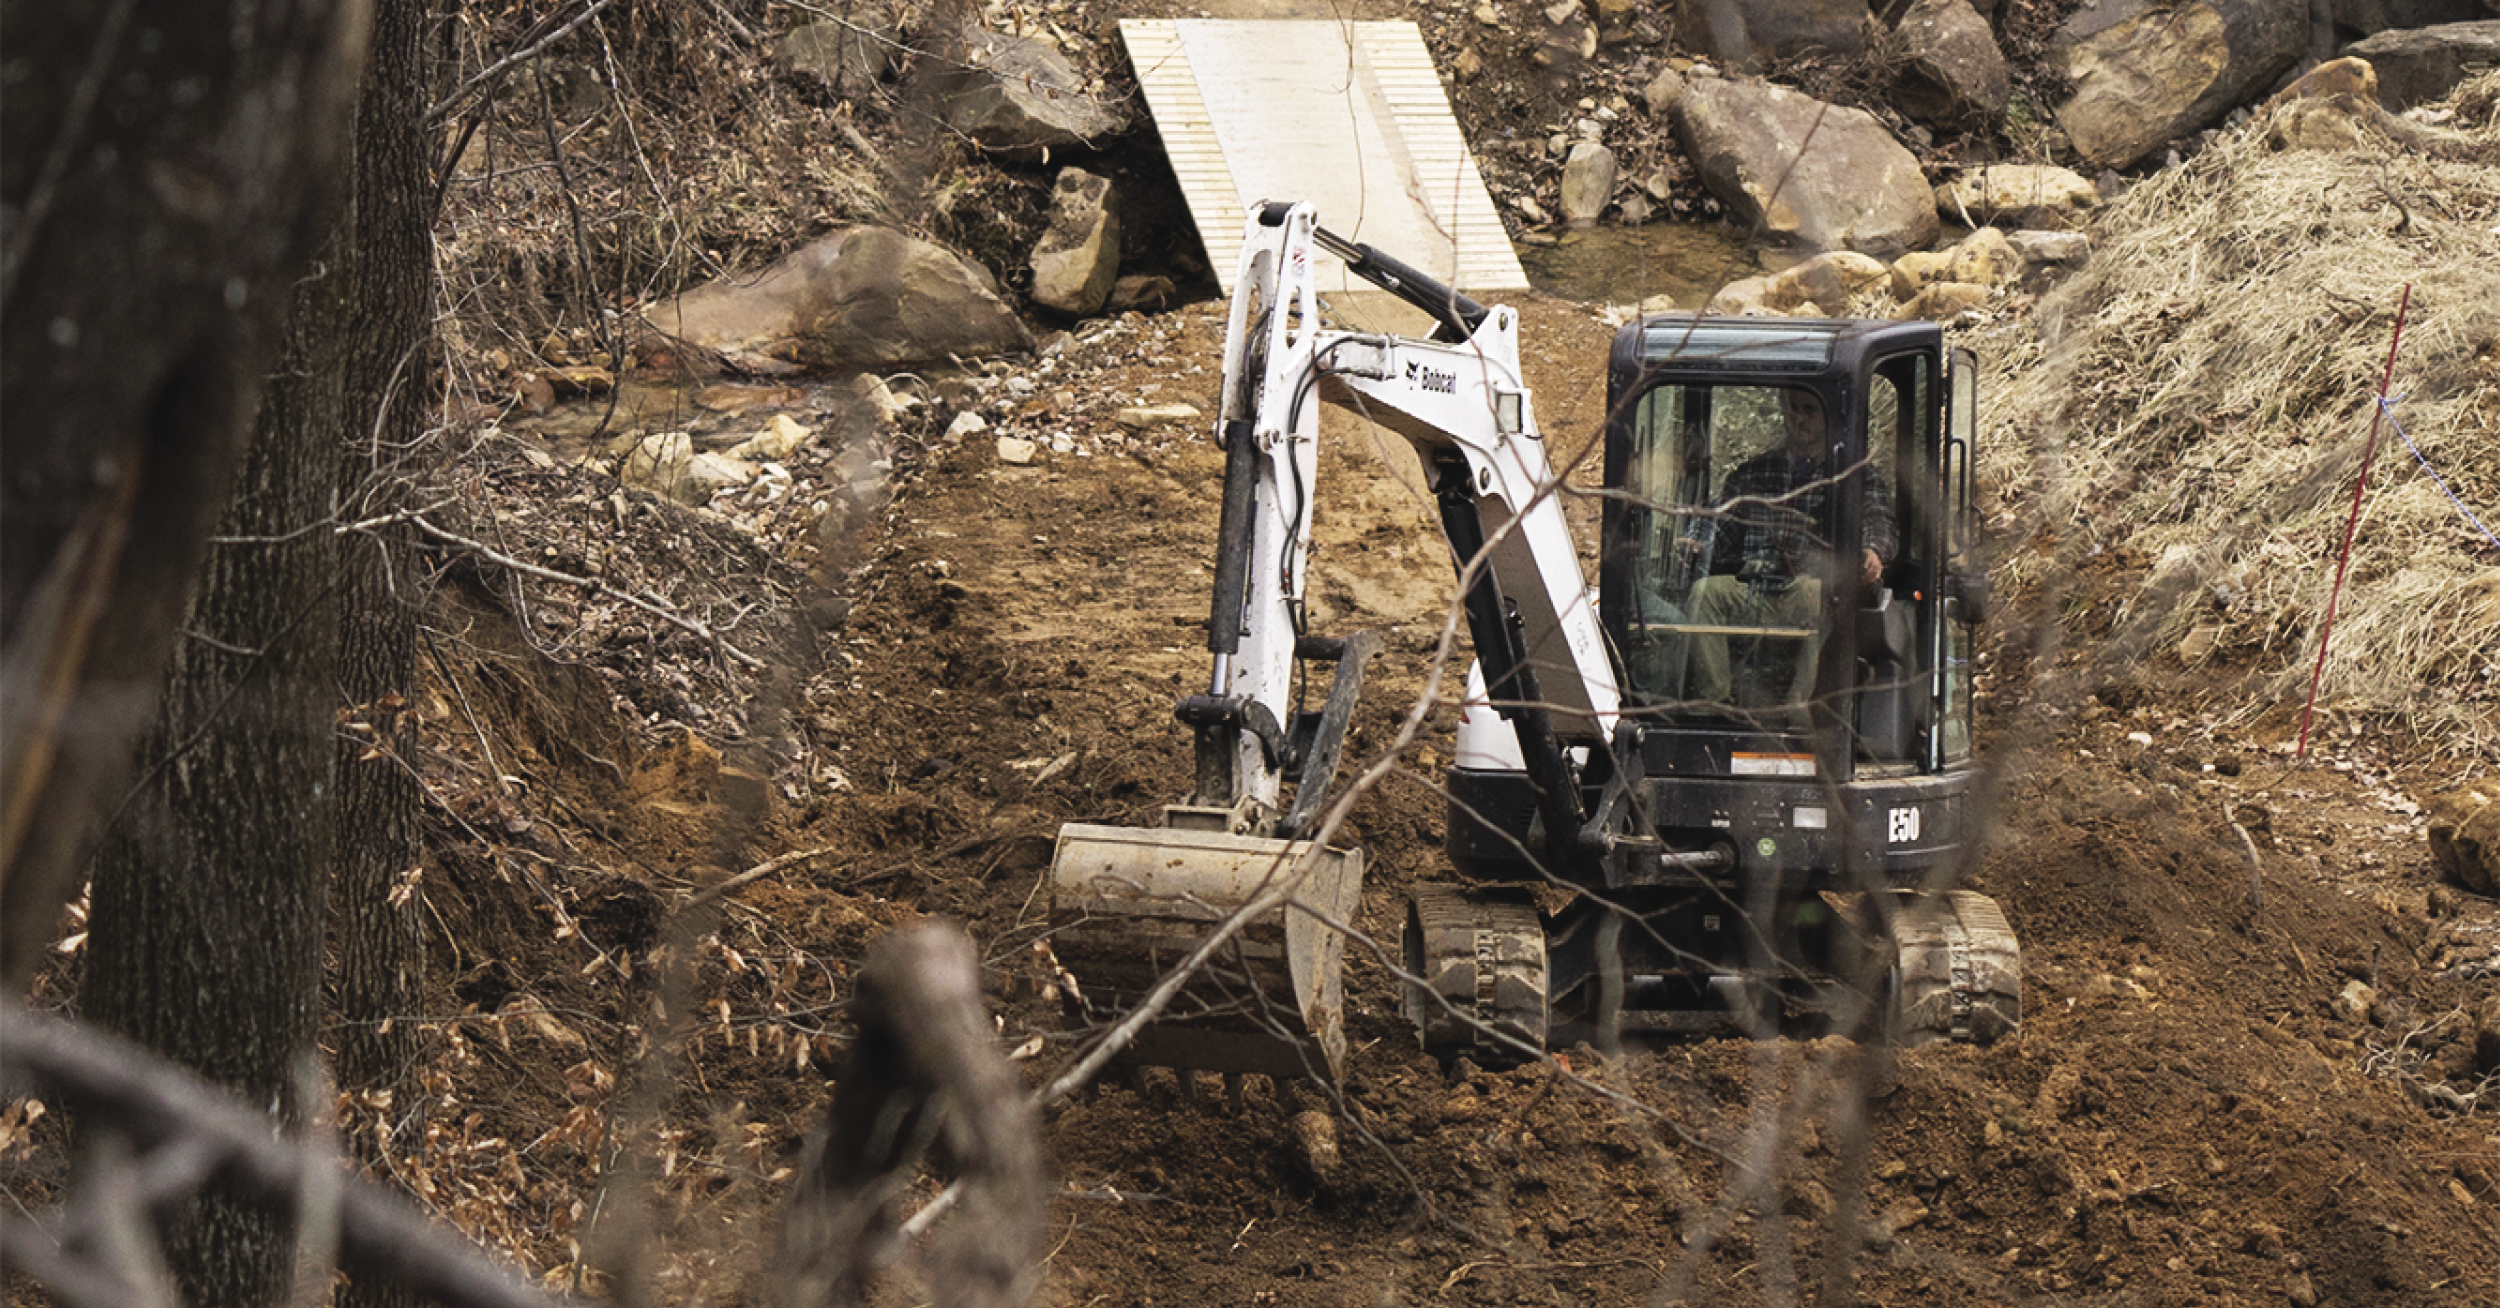 Bobcat E50 excavator digging a new trail at Windrock Bike Park.